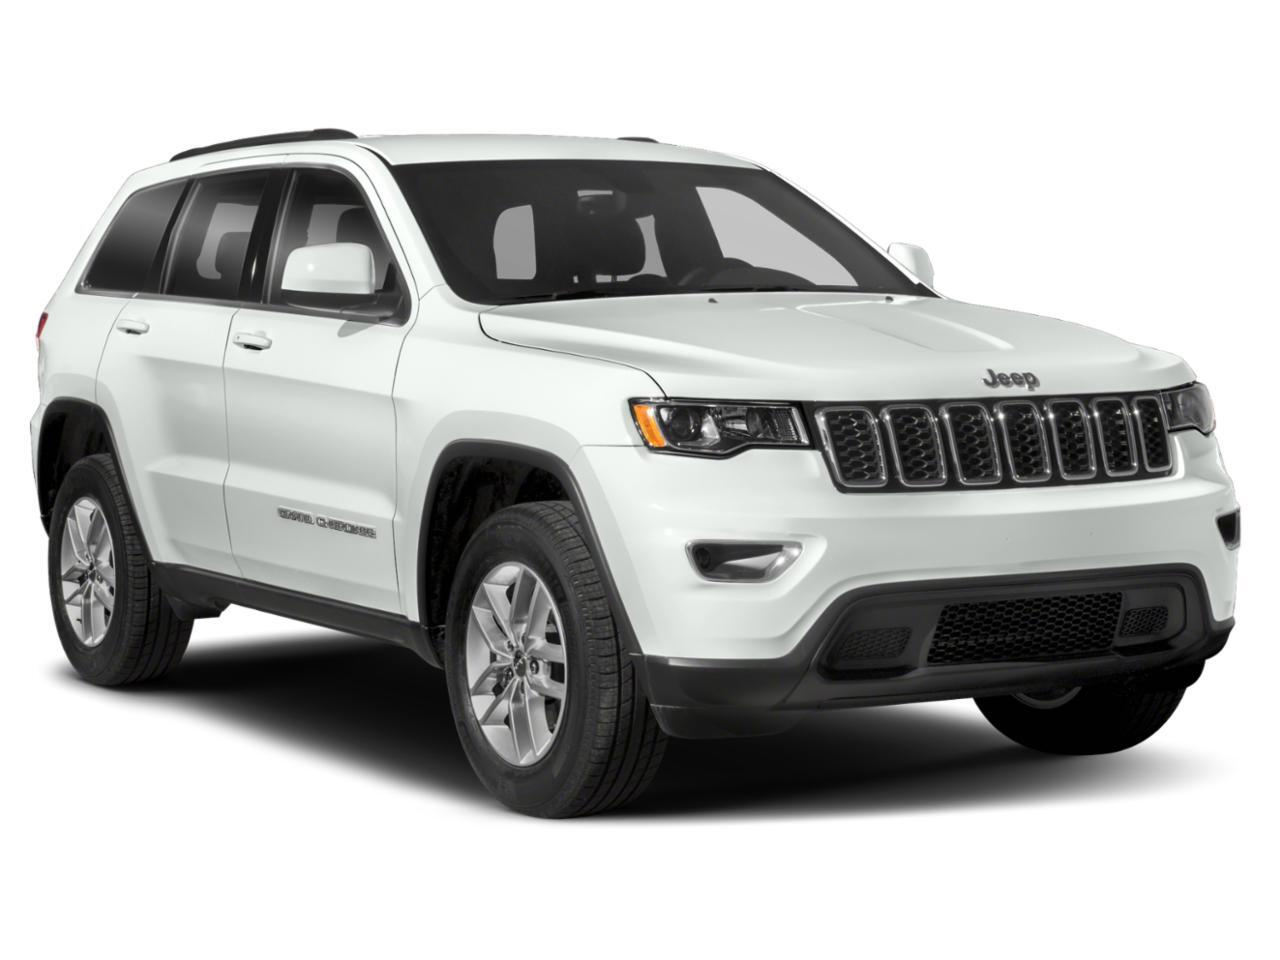 2018 Jeep Grand Cherokee Laredo 4x4 Oshkosh WI